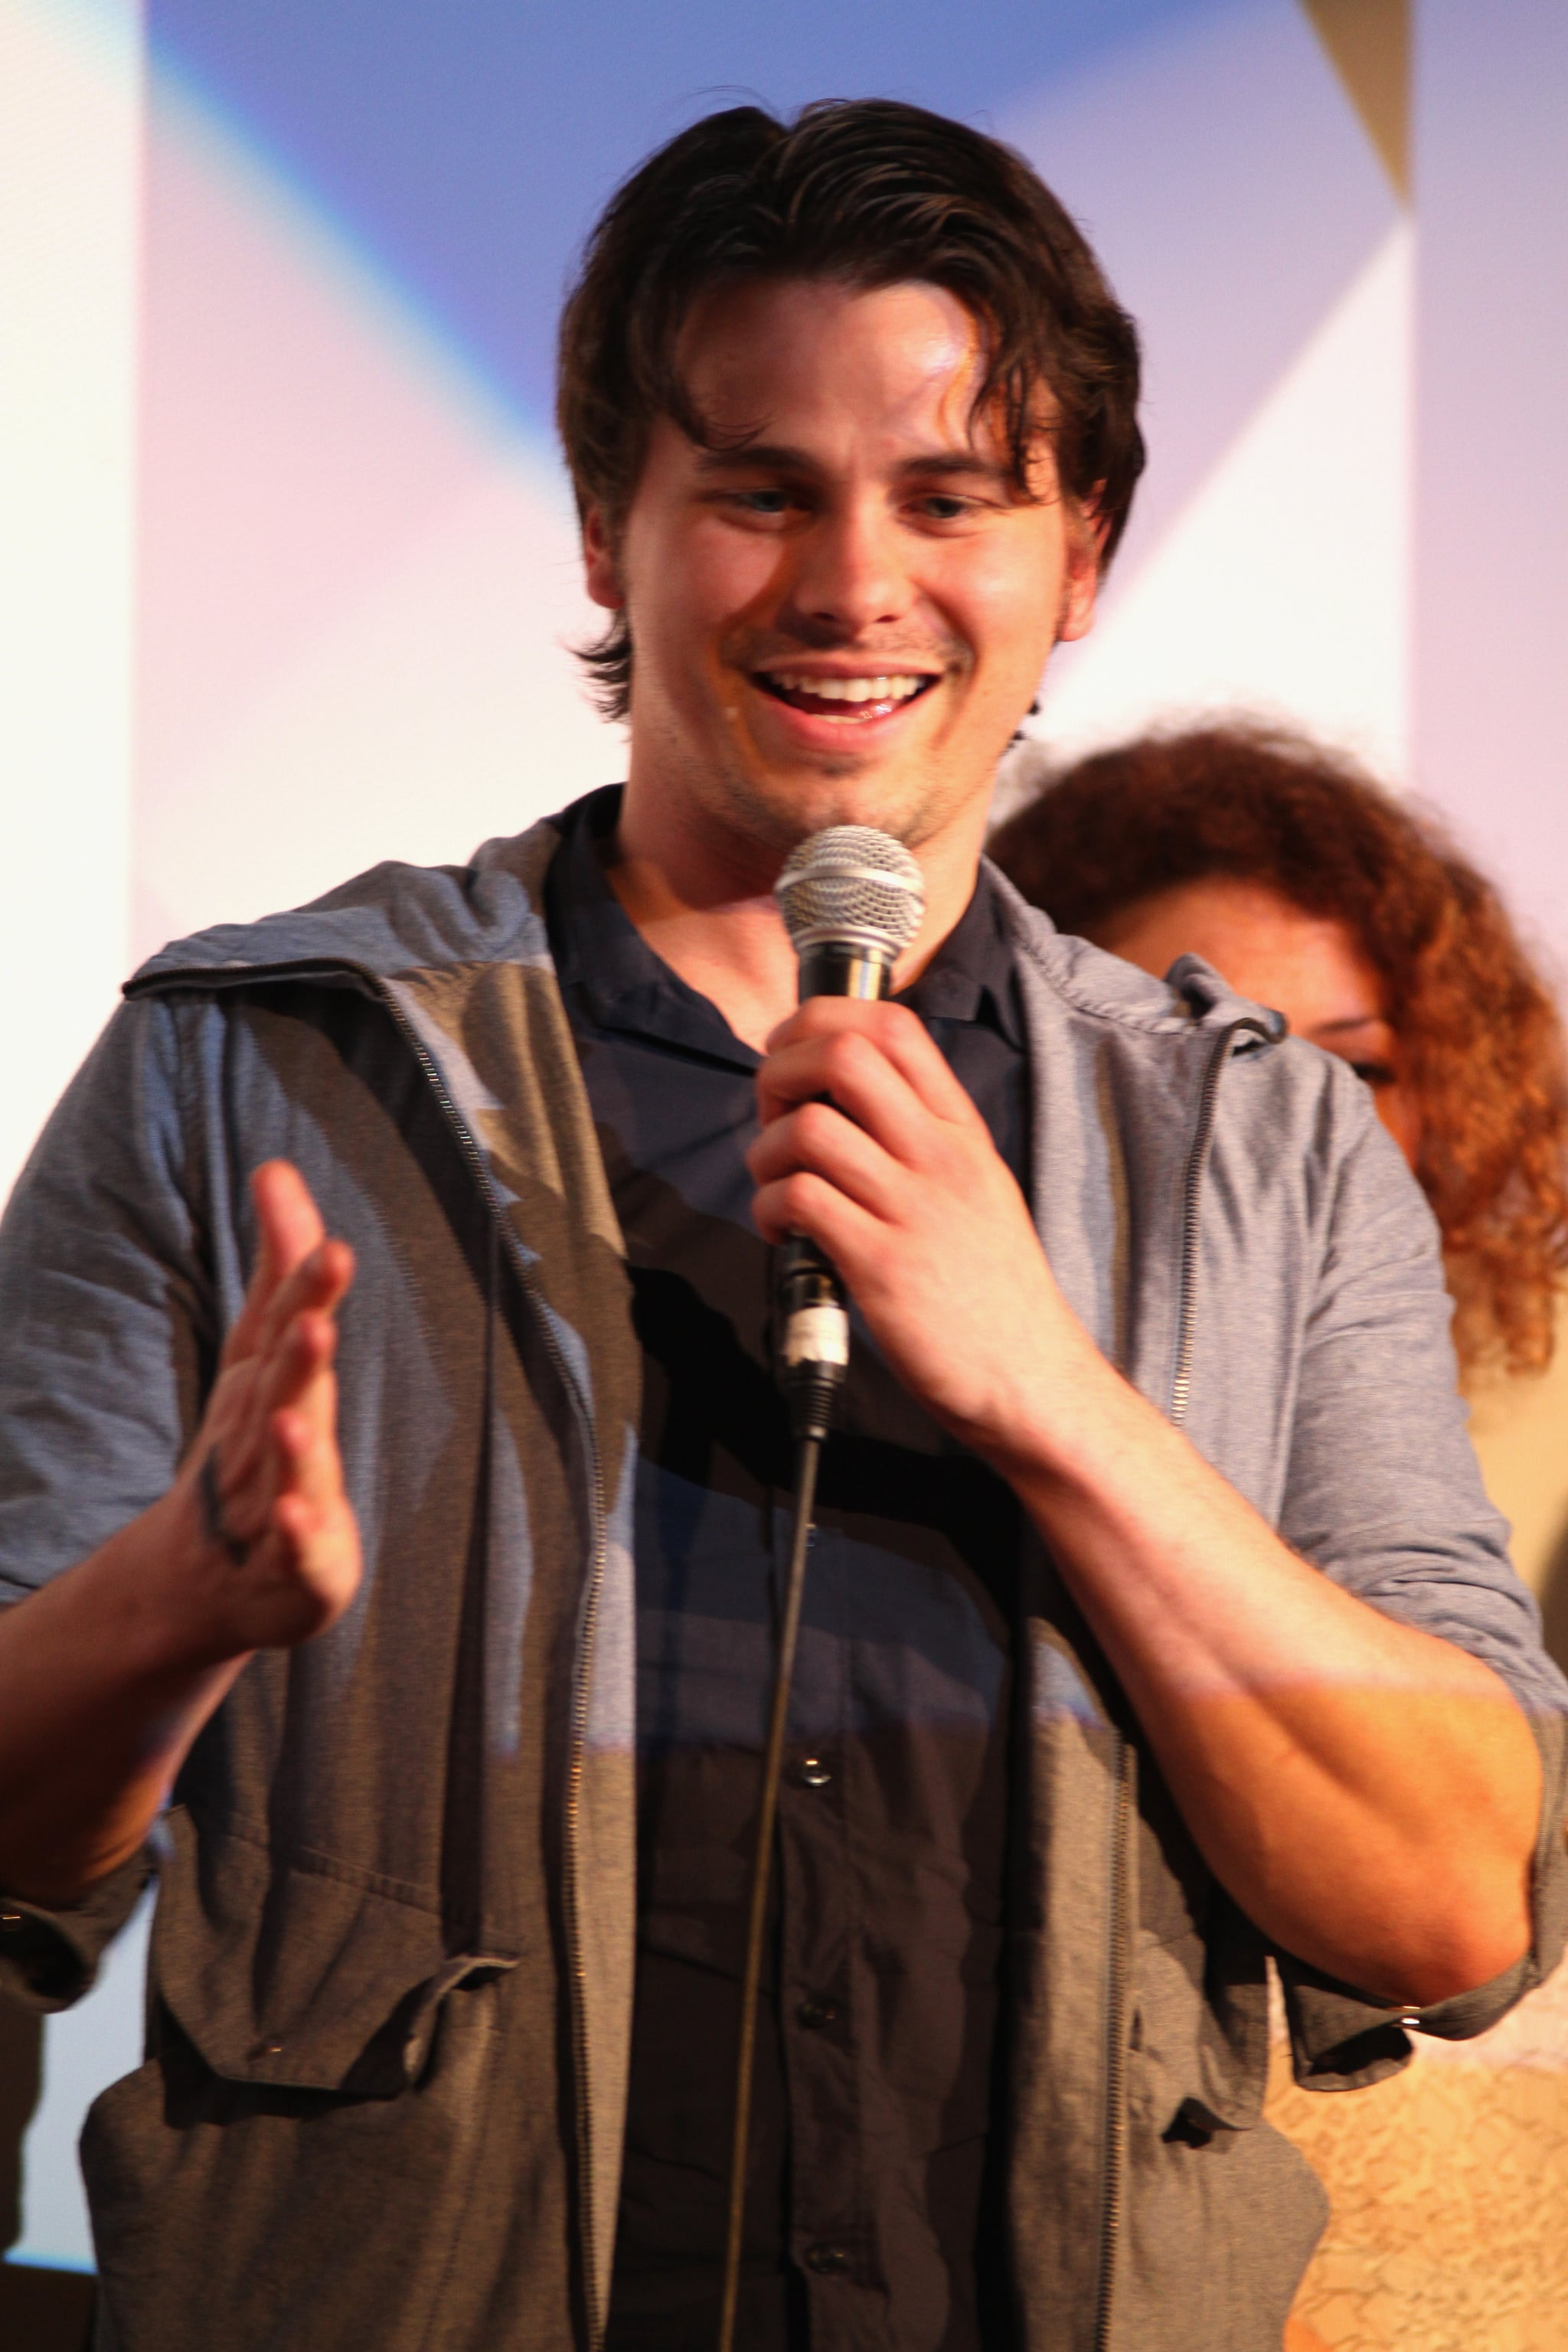 Jason Ritter smiled while speaking with the crowd gathered at the Wild Canaries Q&A on Saturday.